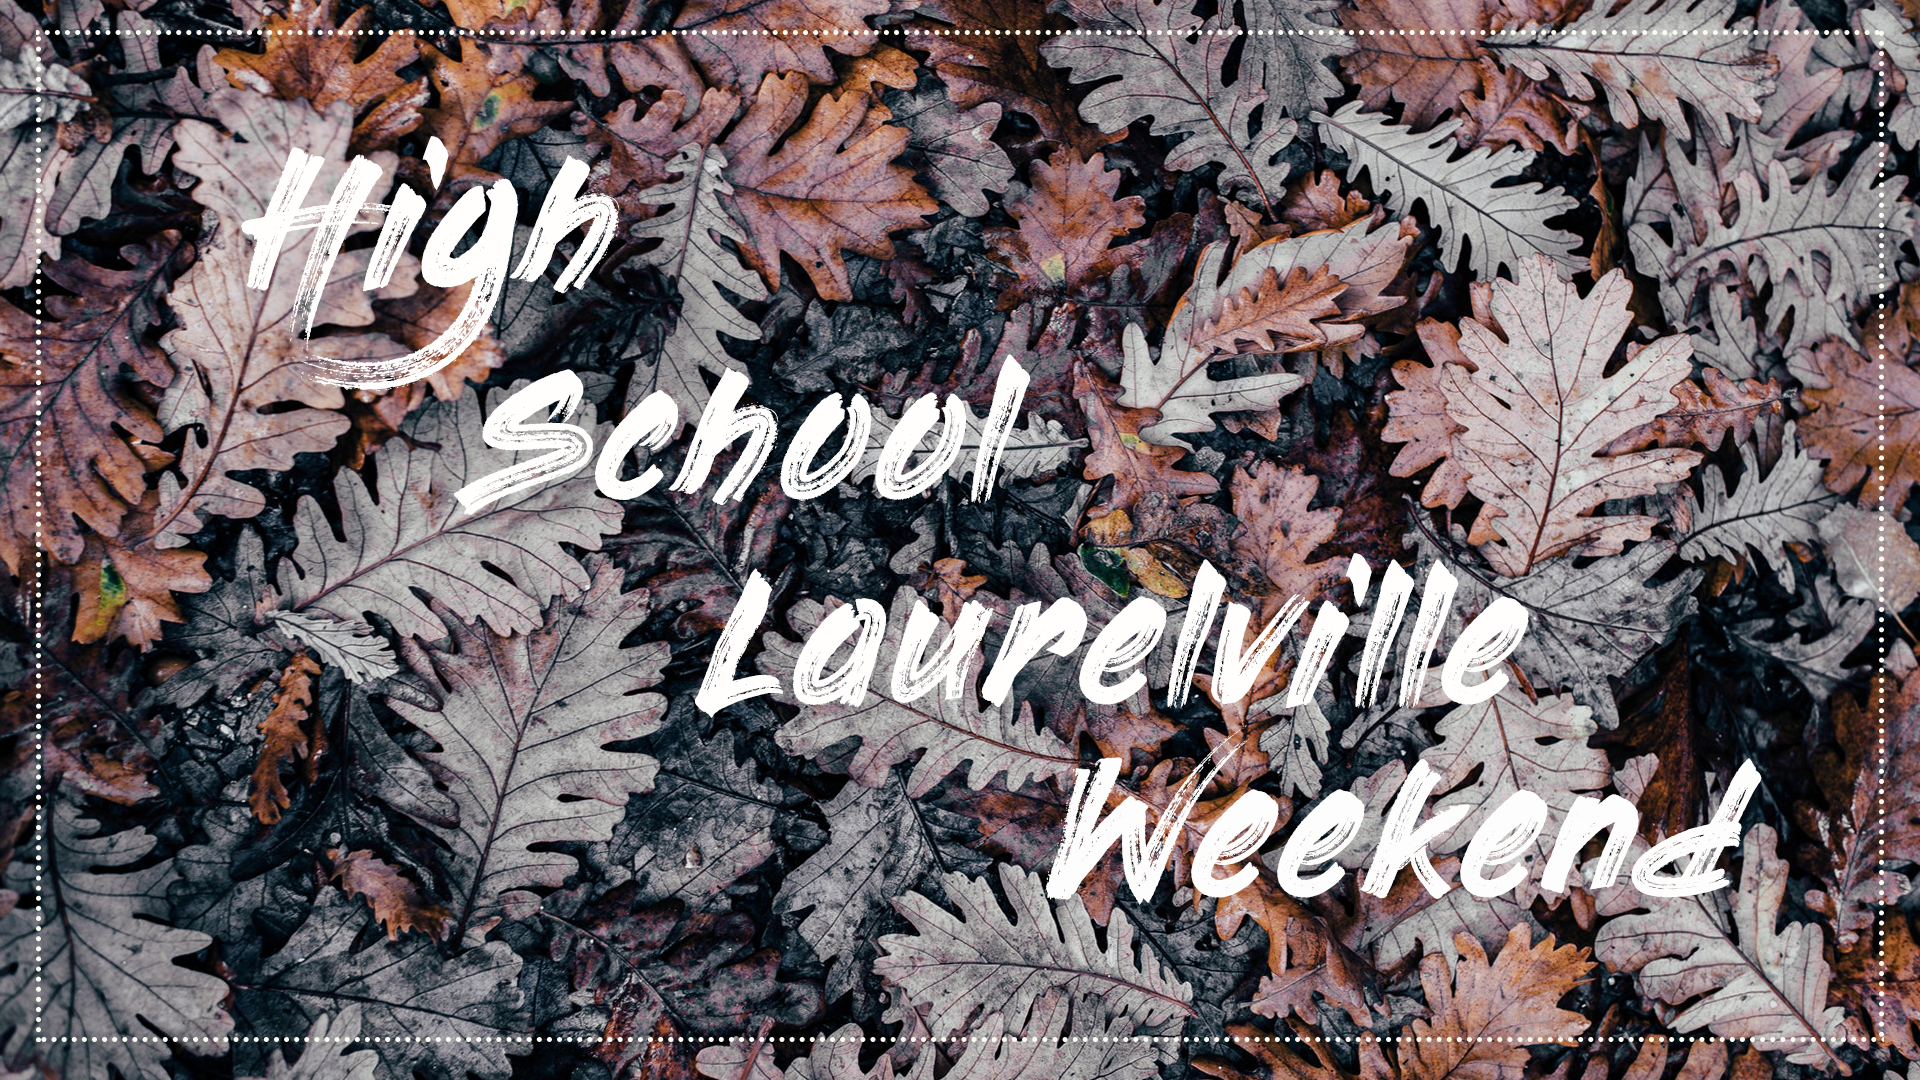 Students_HS Laurelville Weekend_2019.jpg